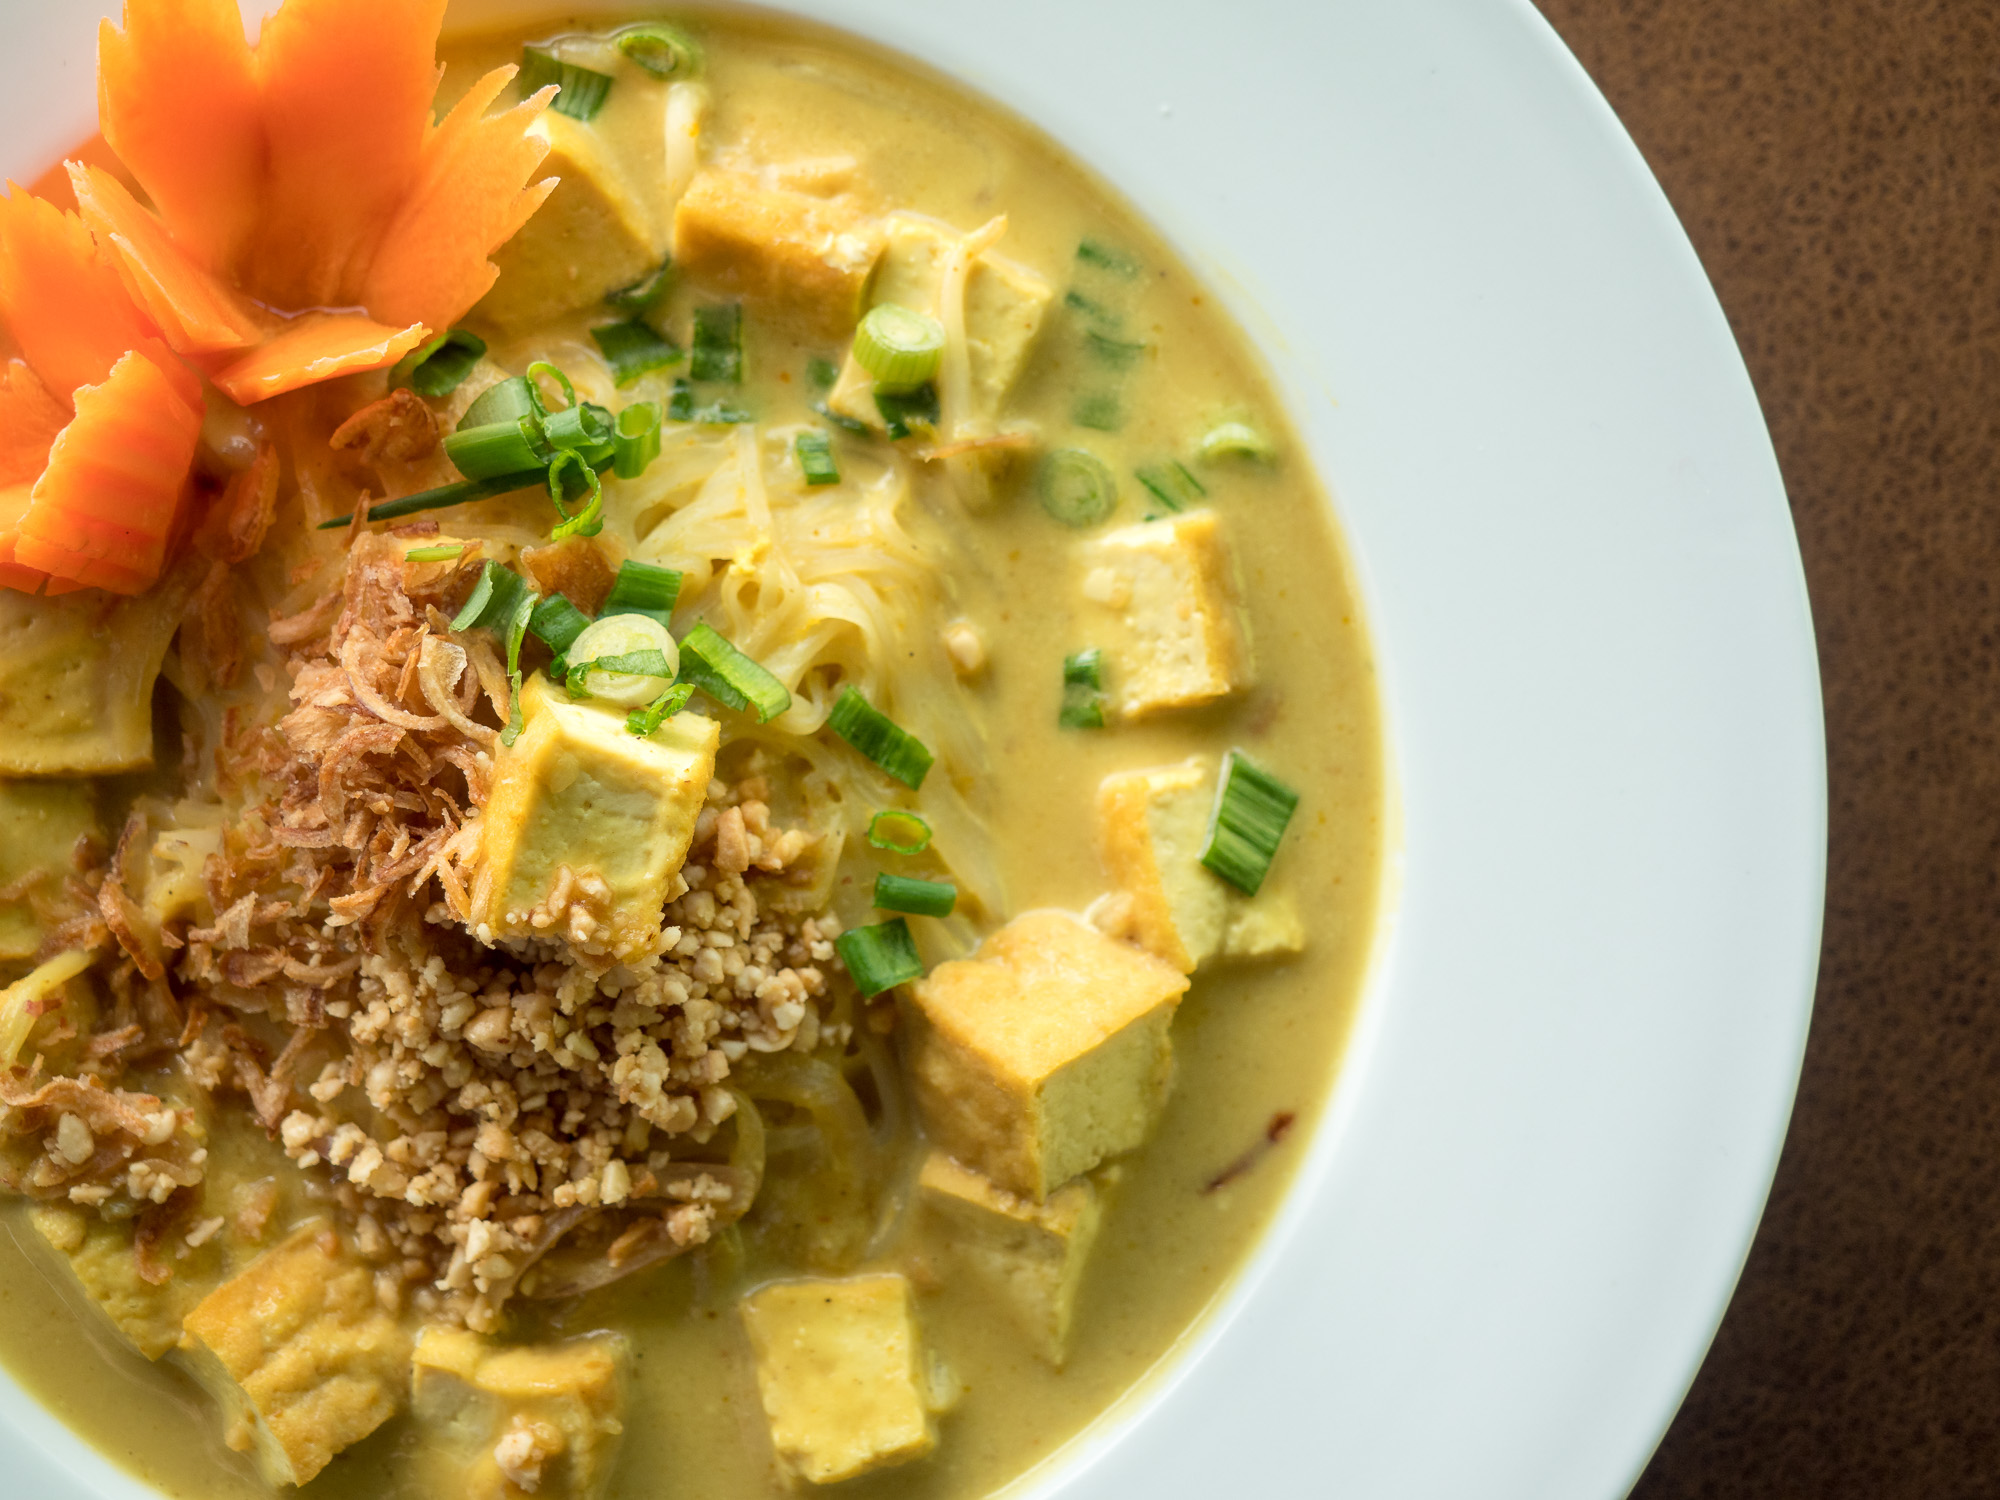 fare photo portland oregon food photographer photography jeremy pawlowski texas austin amarillo classic thai cuisine yellow curry